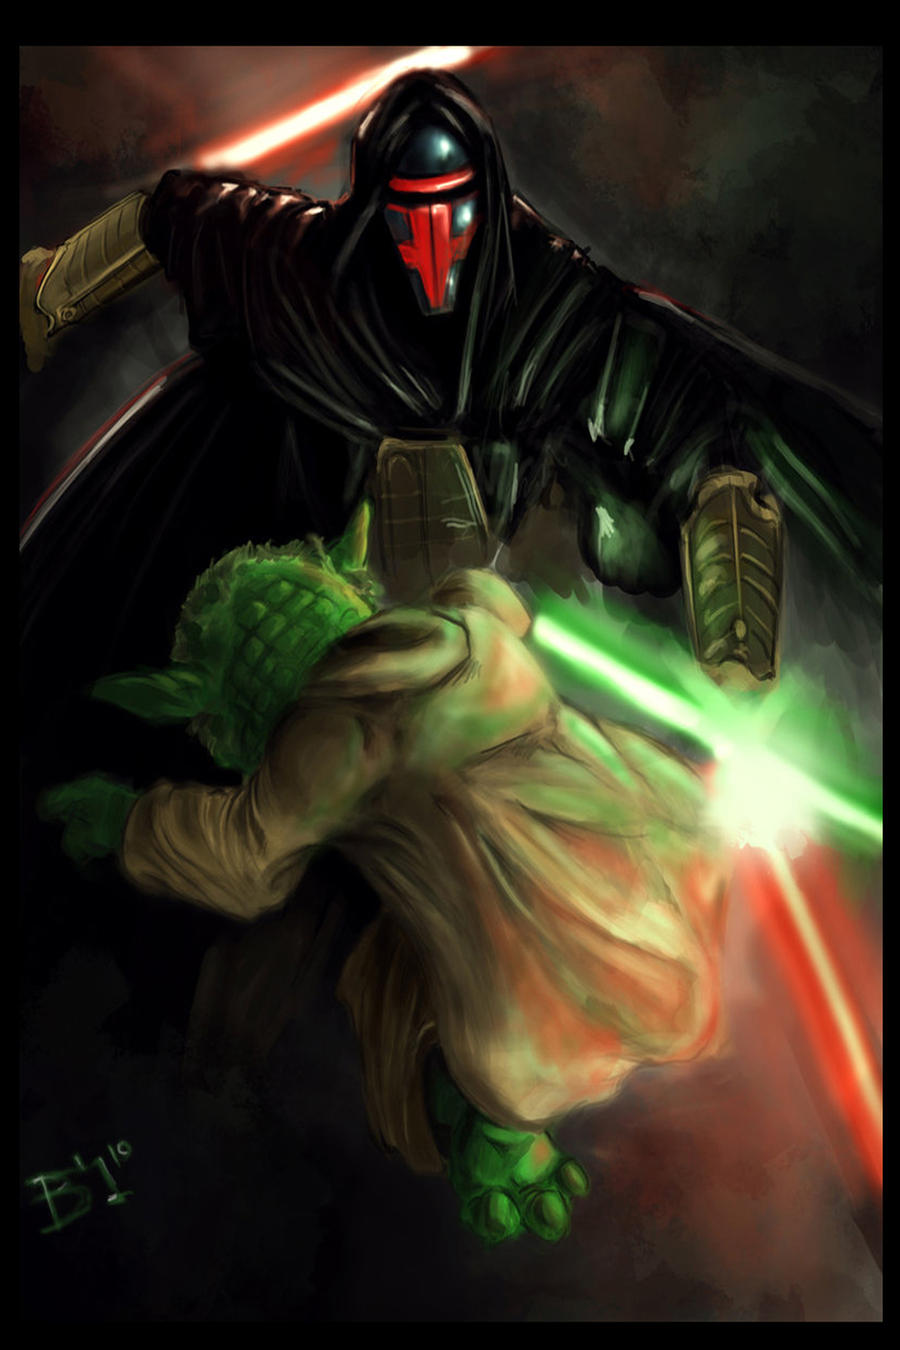 master yoda vs darth - photo #1